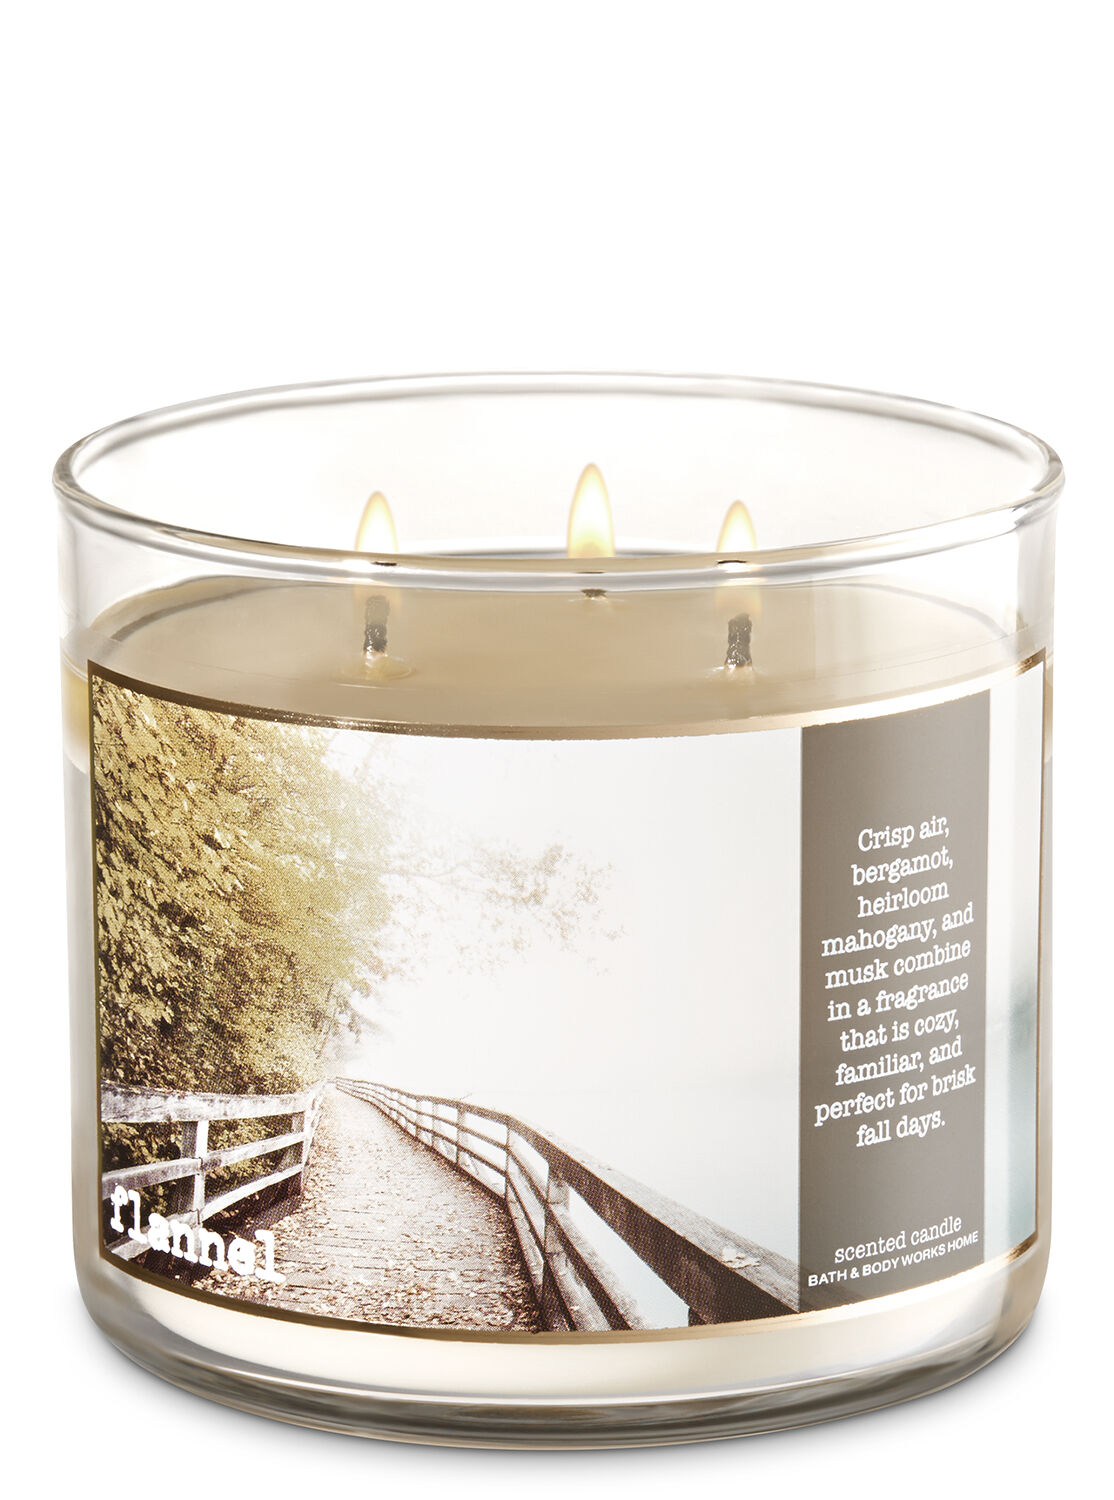 Bath Pictures flannel 3-wick candle | bath & body works